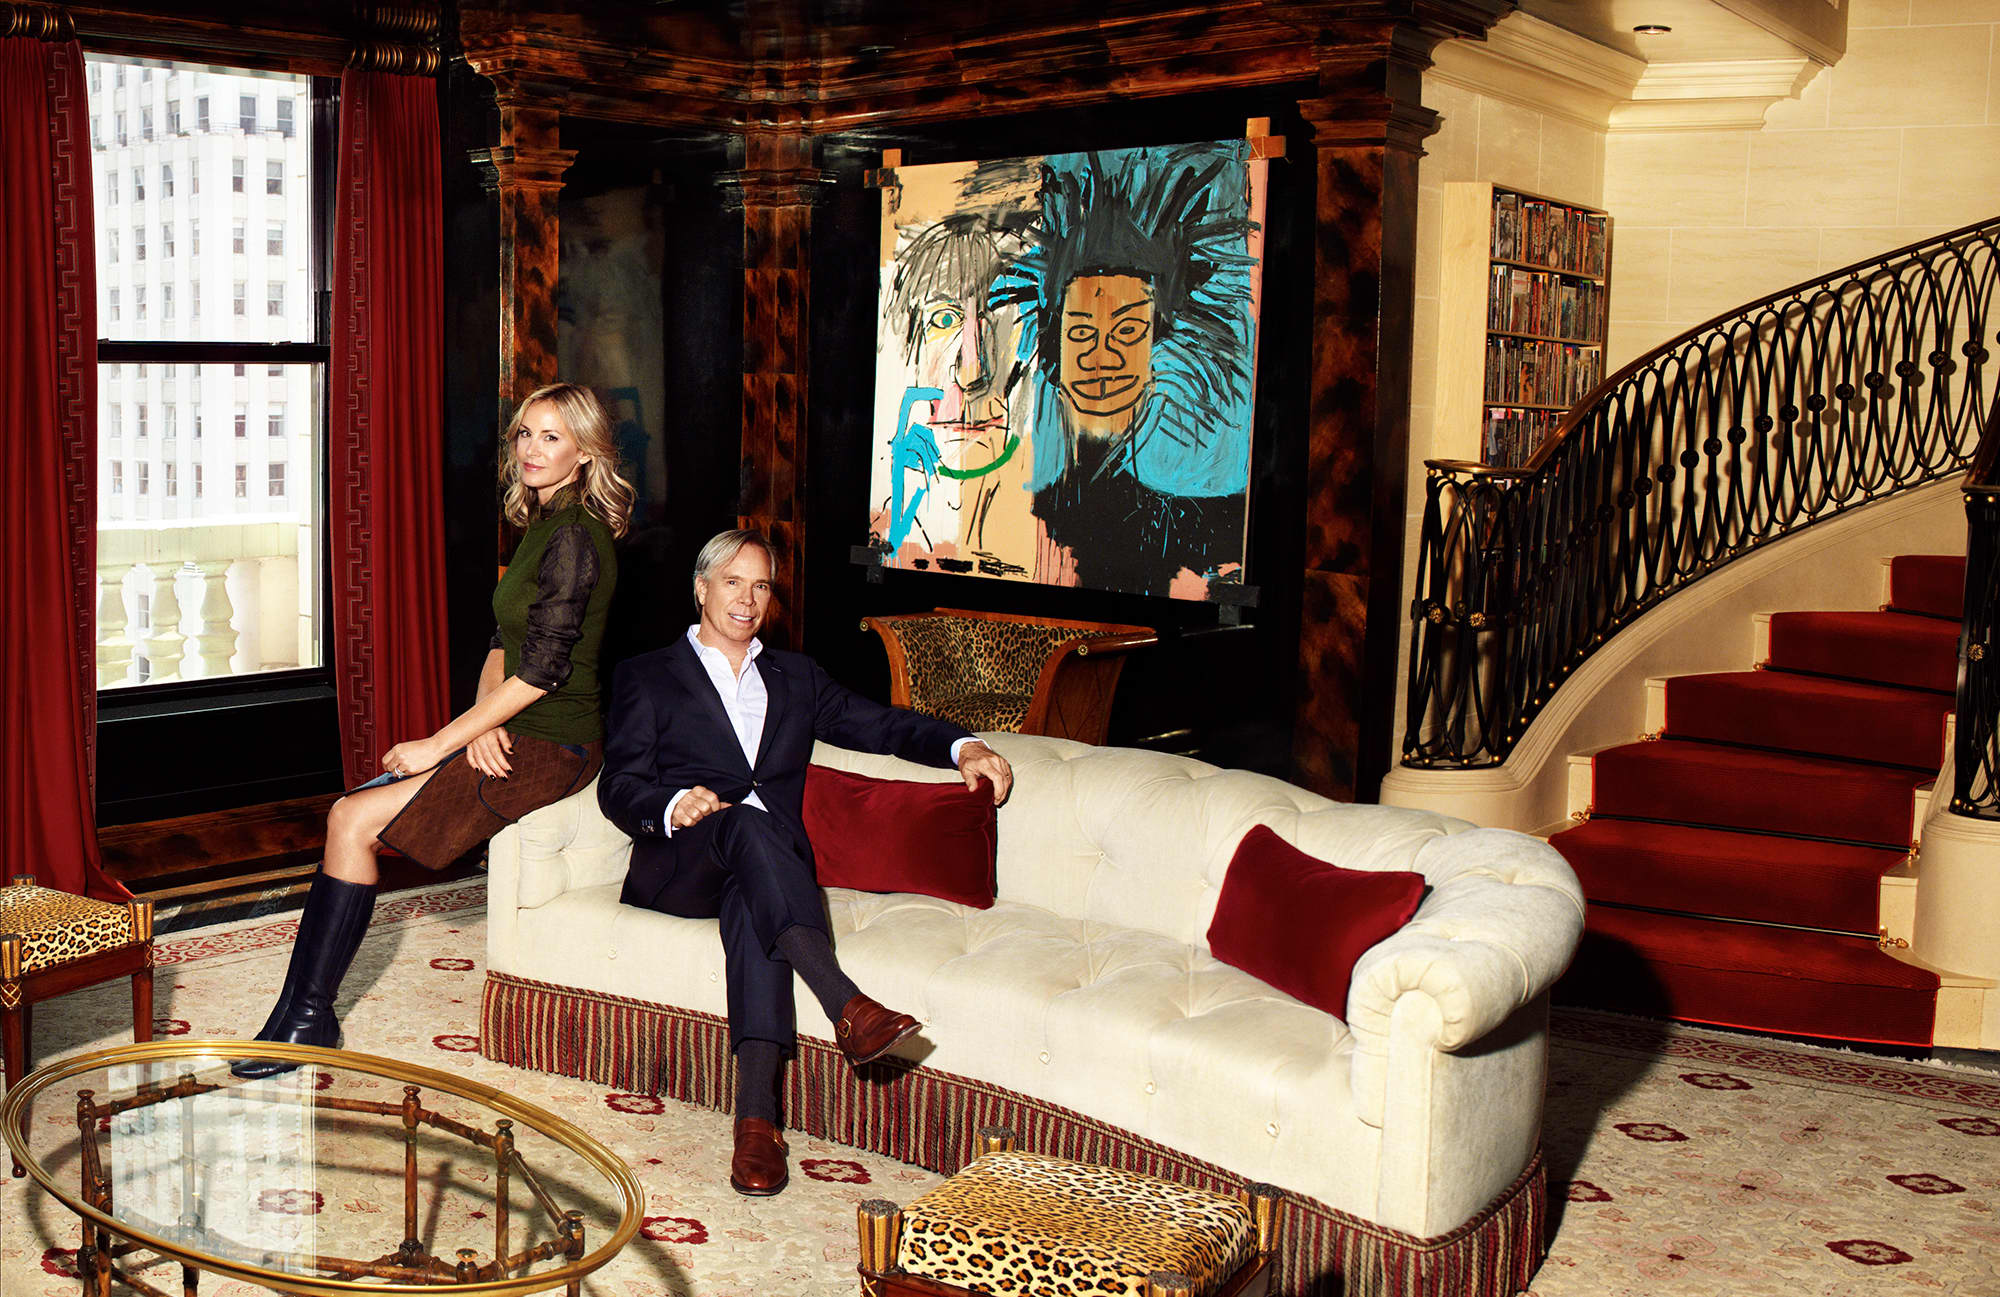 Tommy Hilfiger wanted $80 million for his NYC penthouse but just sold it for $31.25 million—take a look inside